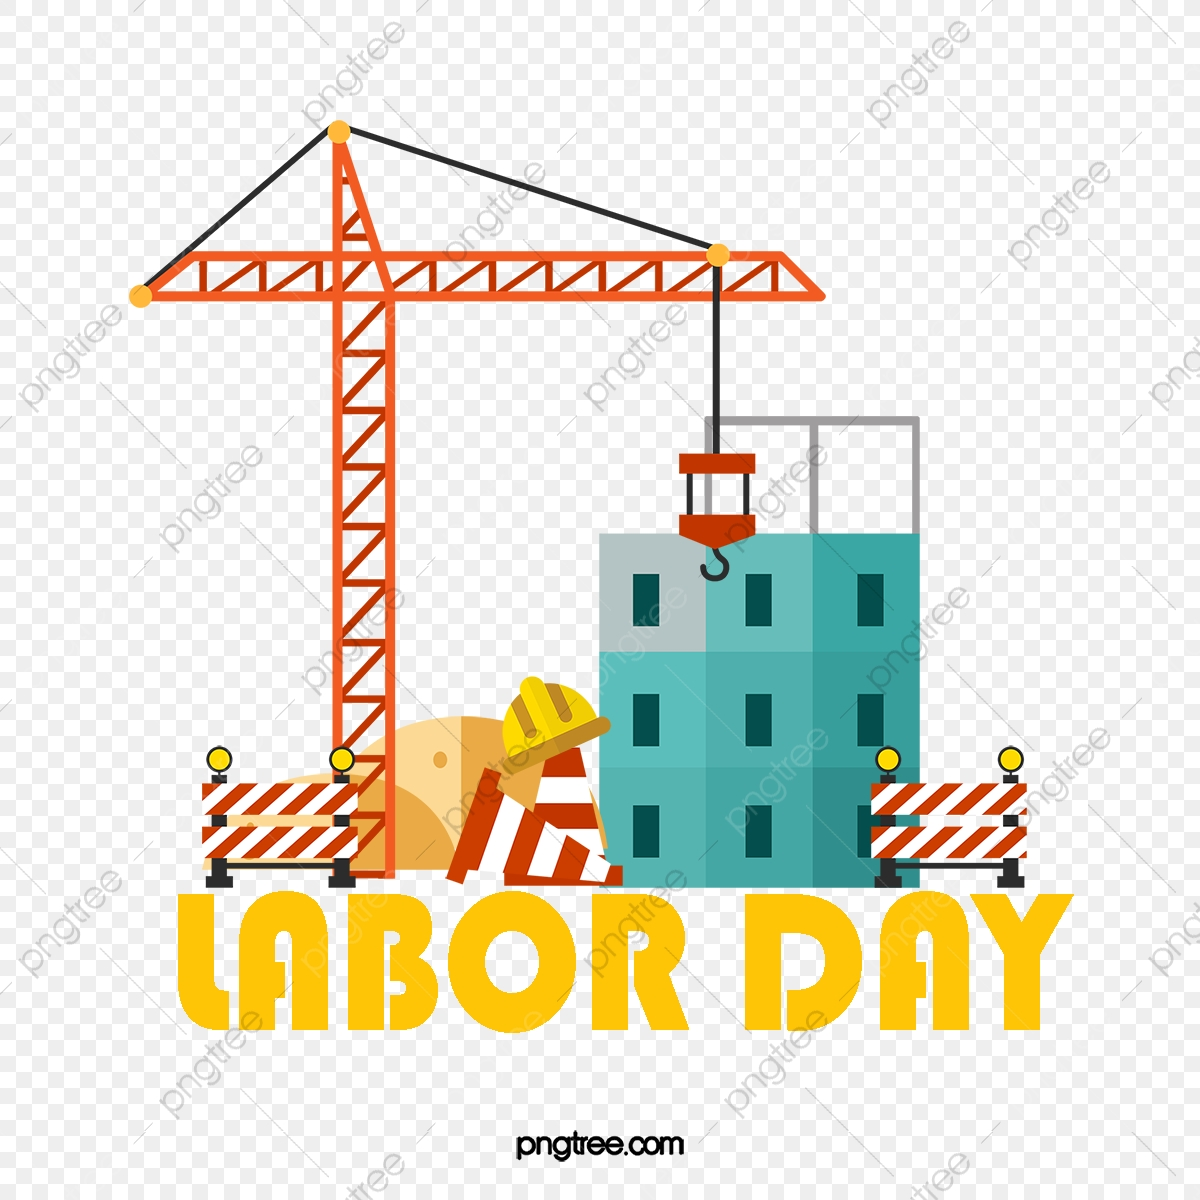 May Labor Day Happy Labor Day Tower Crane Labor Tool Workers Festival May Day Labor Day Labor Day Png Transparent Clipart Image And Psd File For Free Download